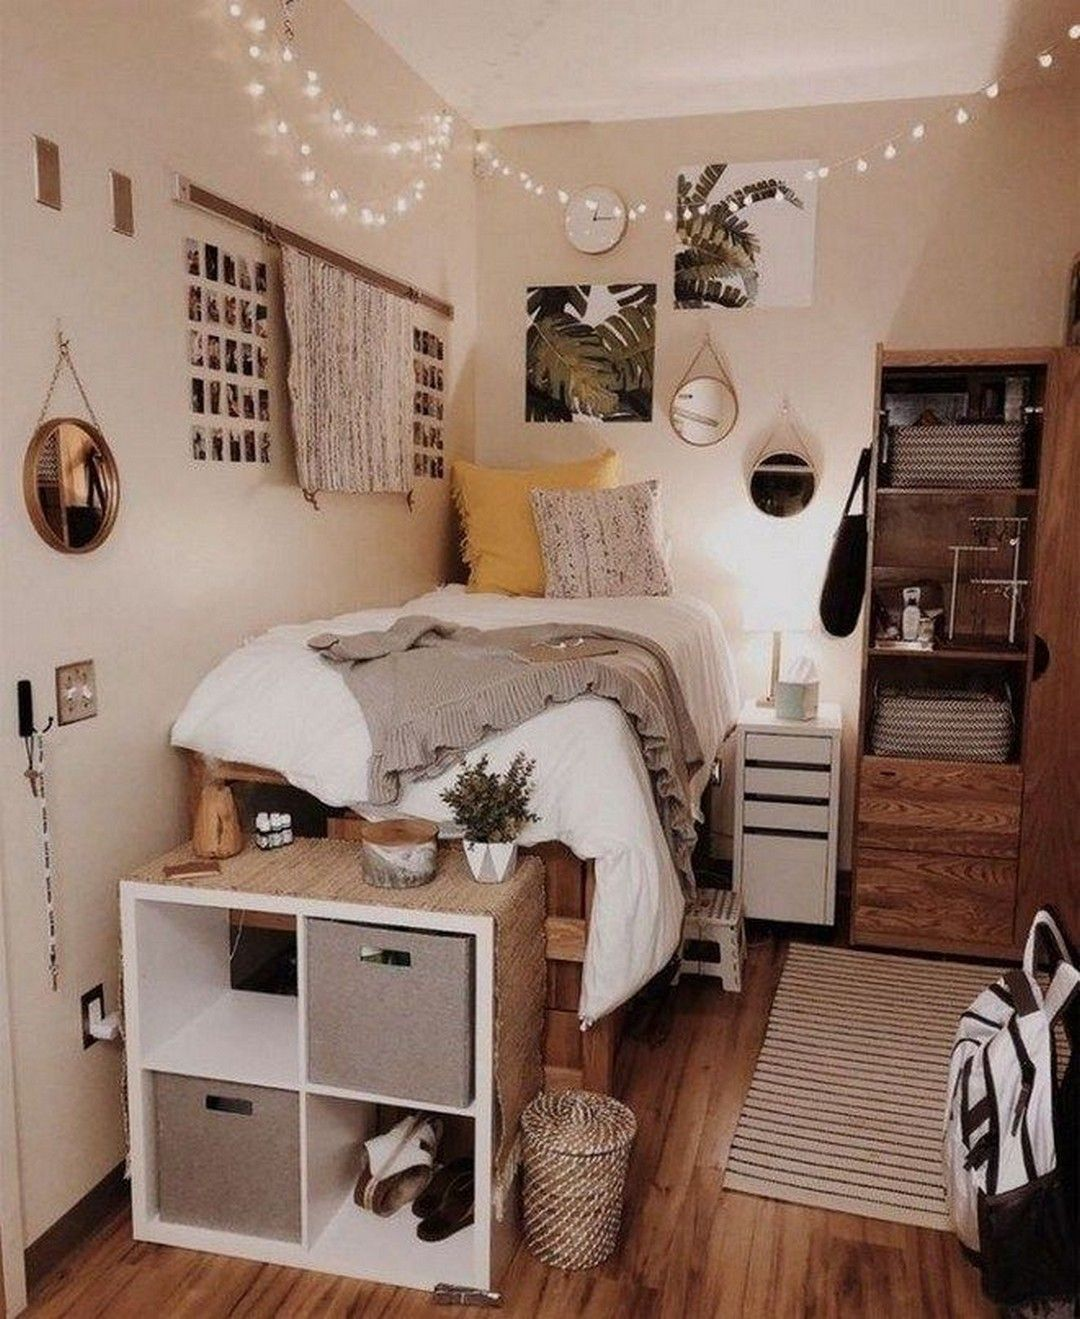 Cool 12+ Brilliant Dorm Room Organization Ideas On A Budget